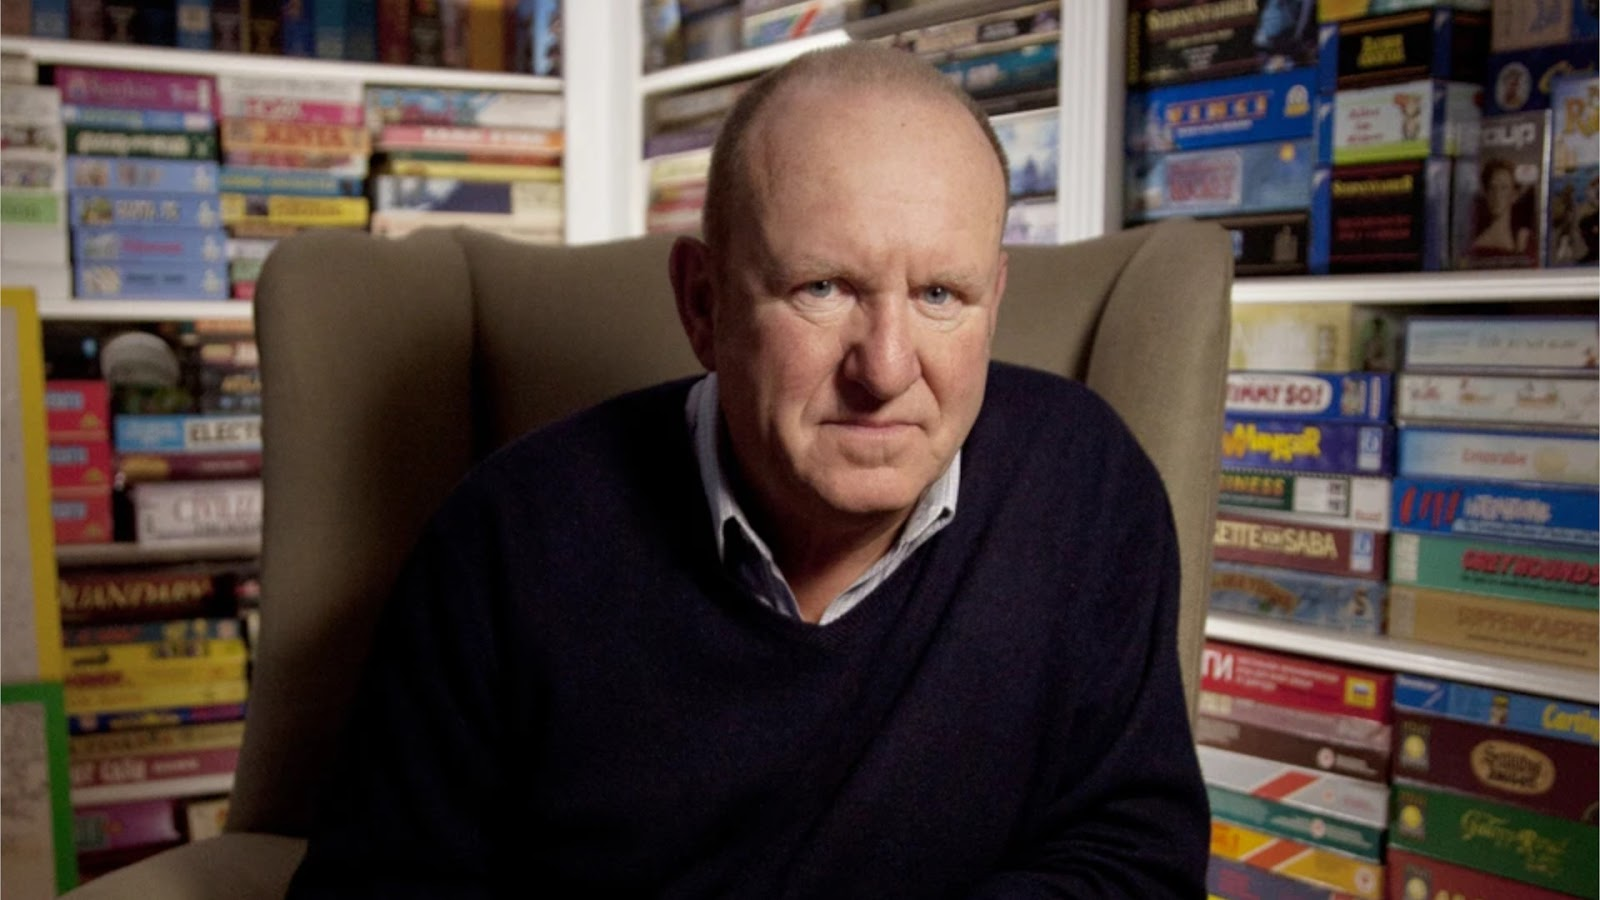 News Collider Board Game News Ian Livingstone 100 Million Euro Fund Game Development